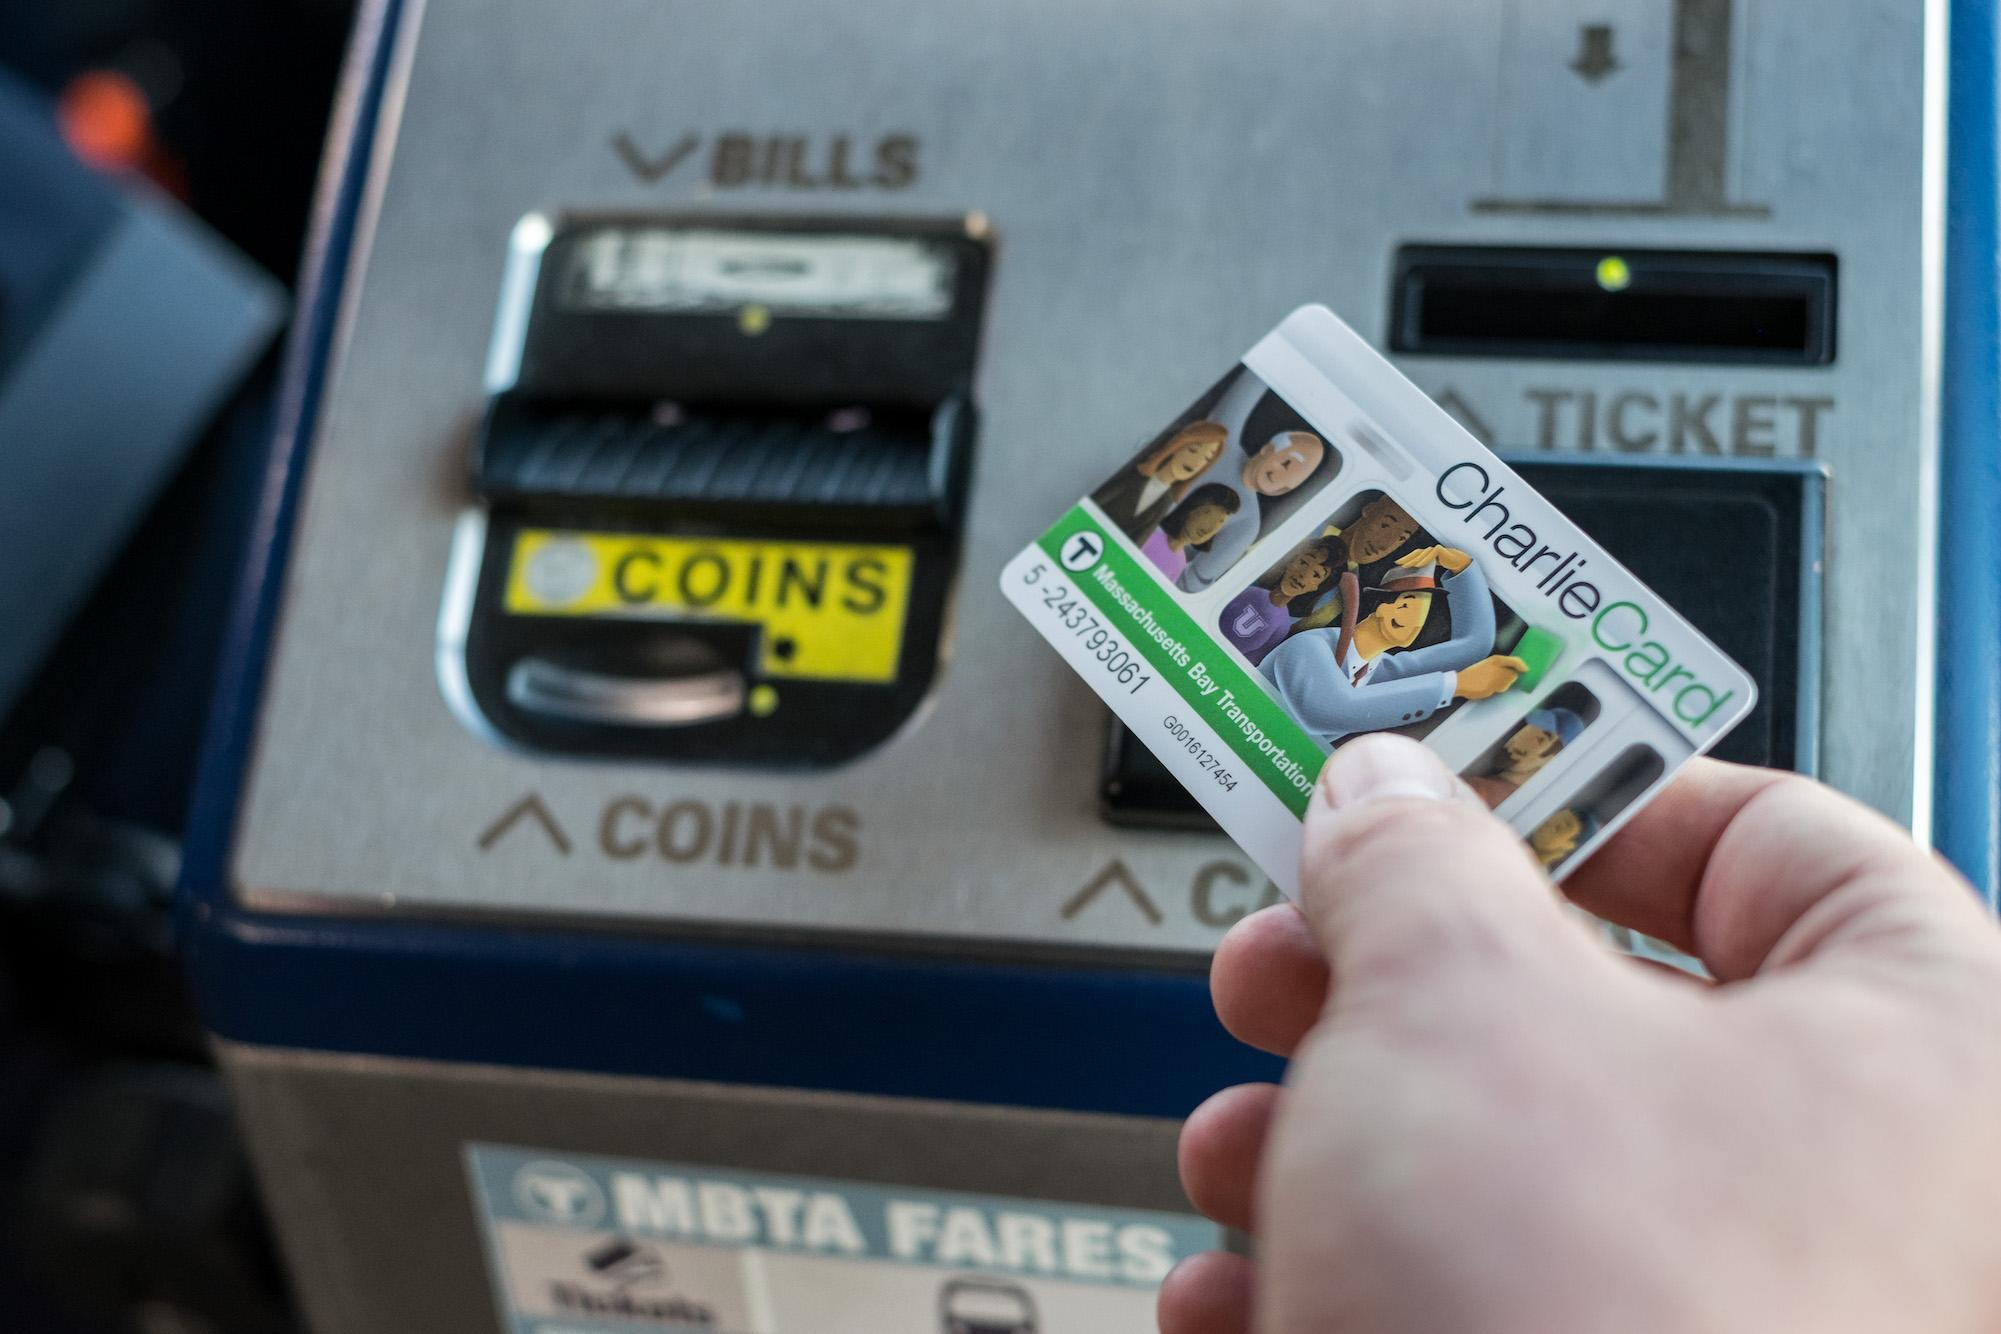 A rider taps his CharlieCard on a farebox while boarding the bus